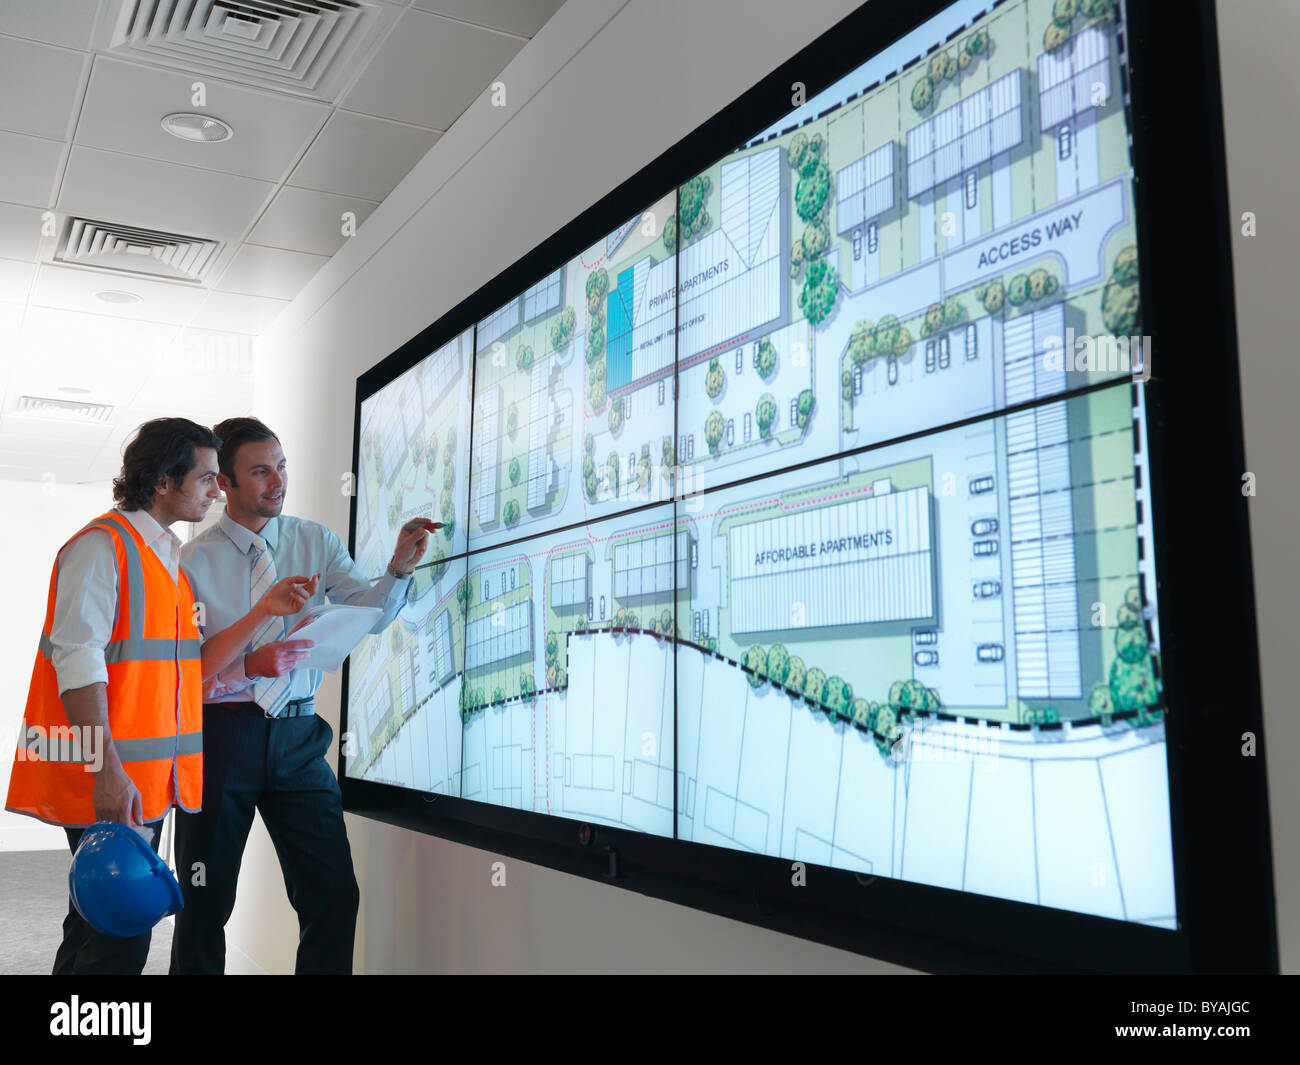 Town planners work at plans on screen - Stock Image